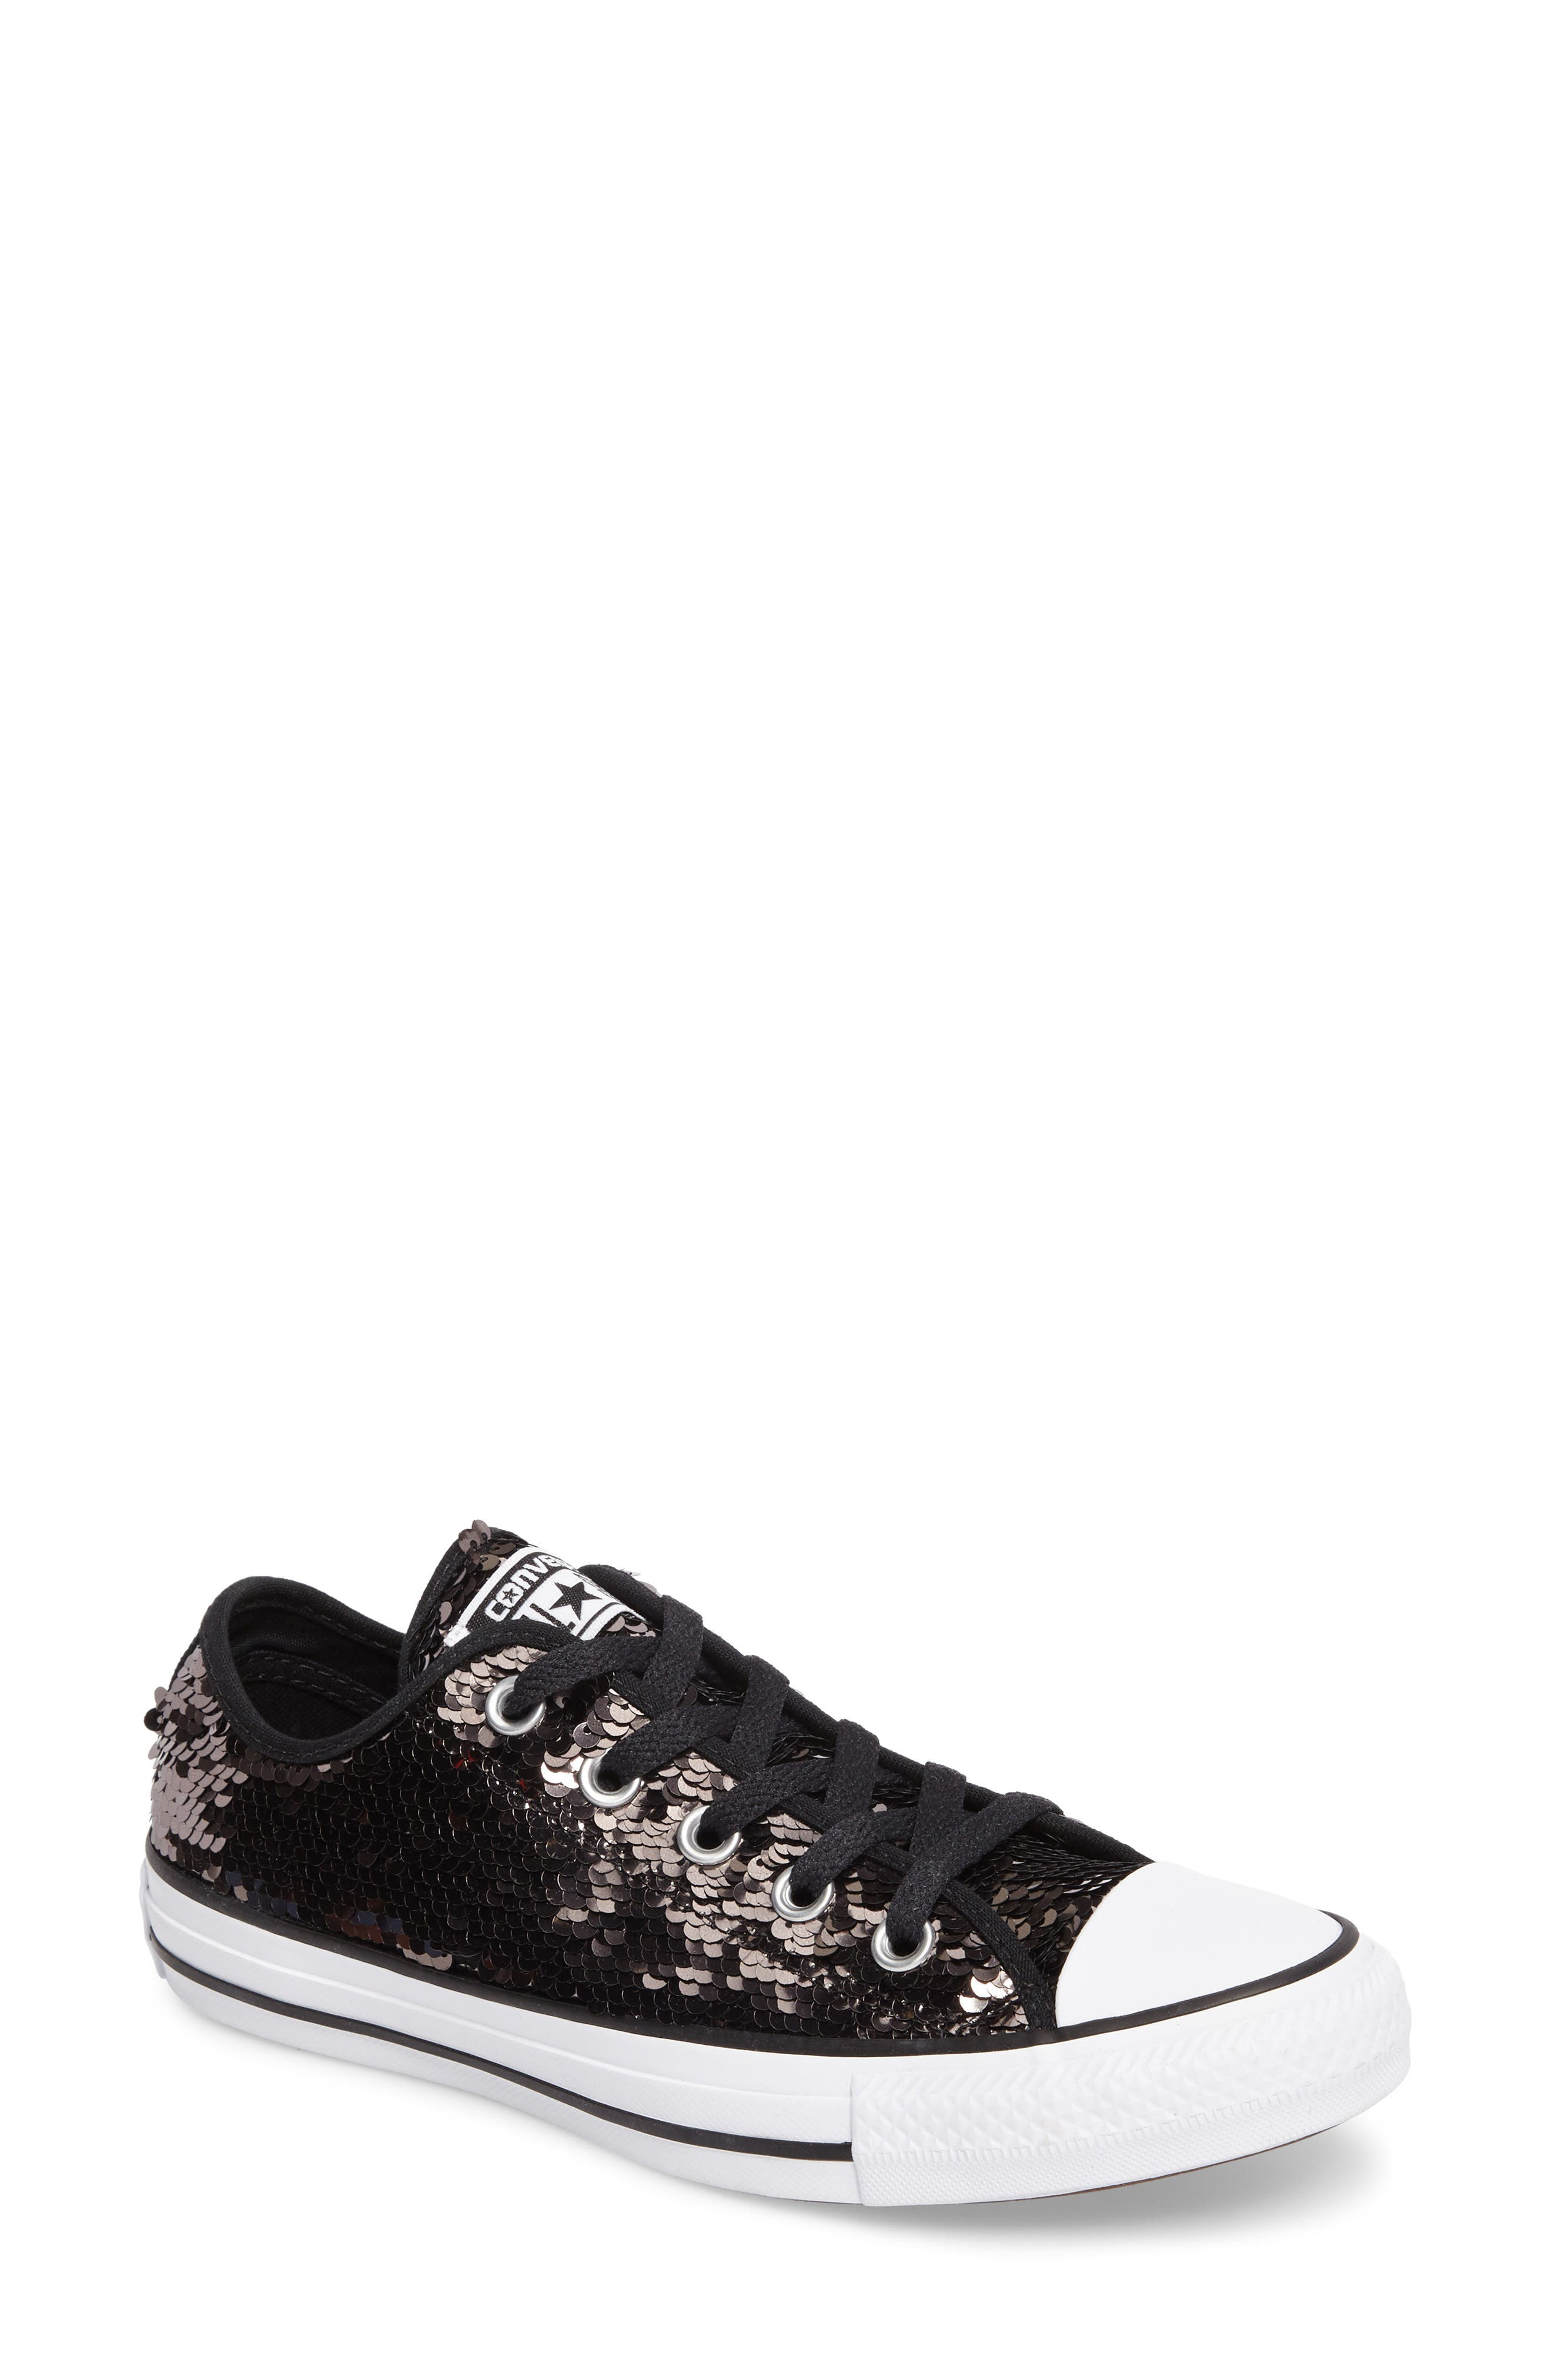 Chuck Taylor<sup>®</sup> All Star<sup>®</sup> Sequin Low Top Sneaker,                         Main,                         color, Gunmetal Sequins